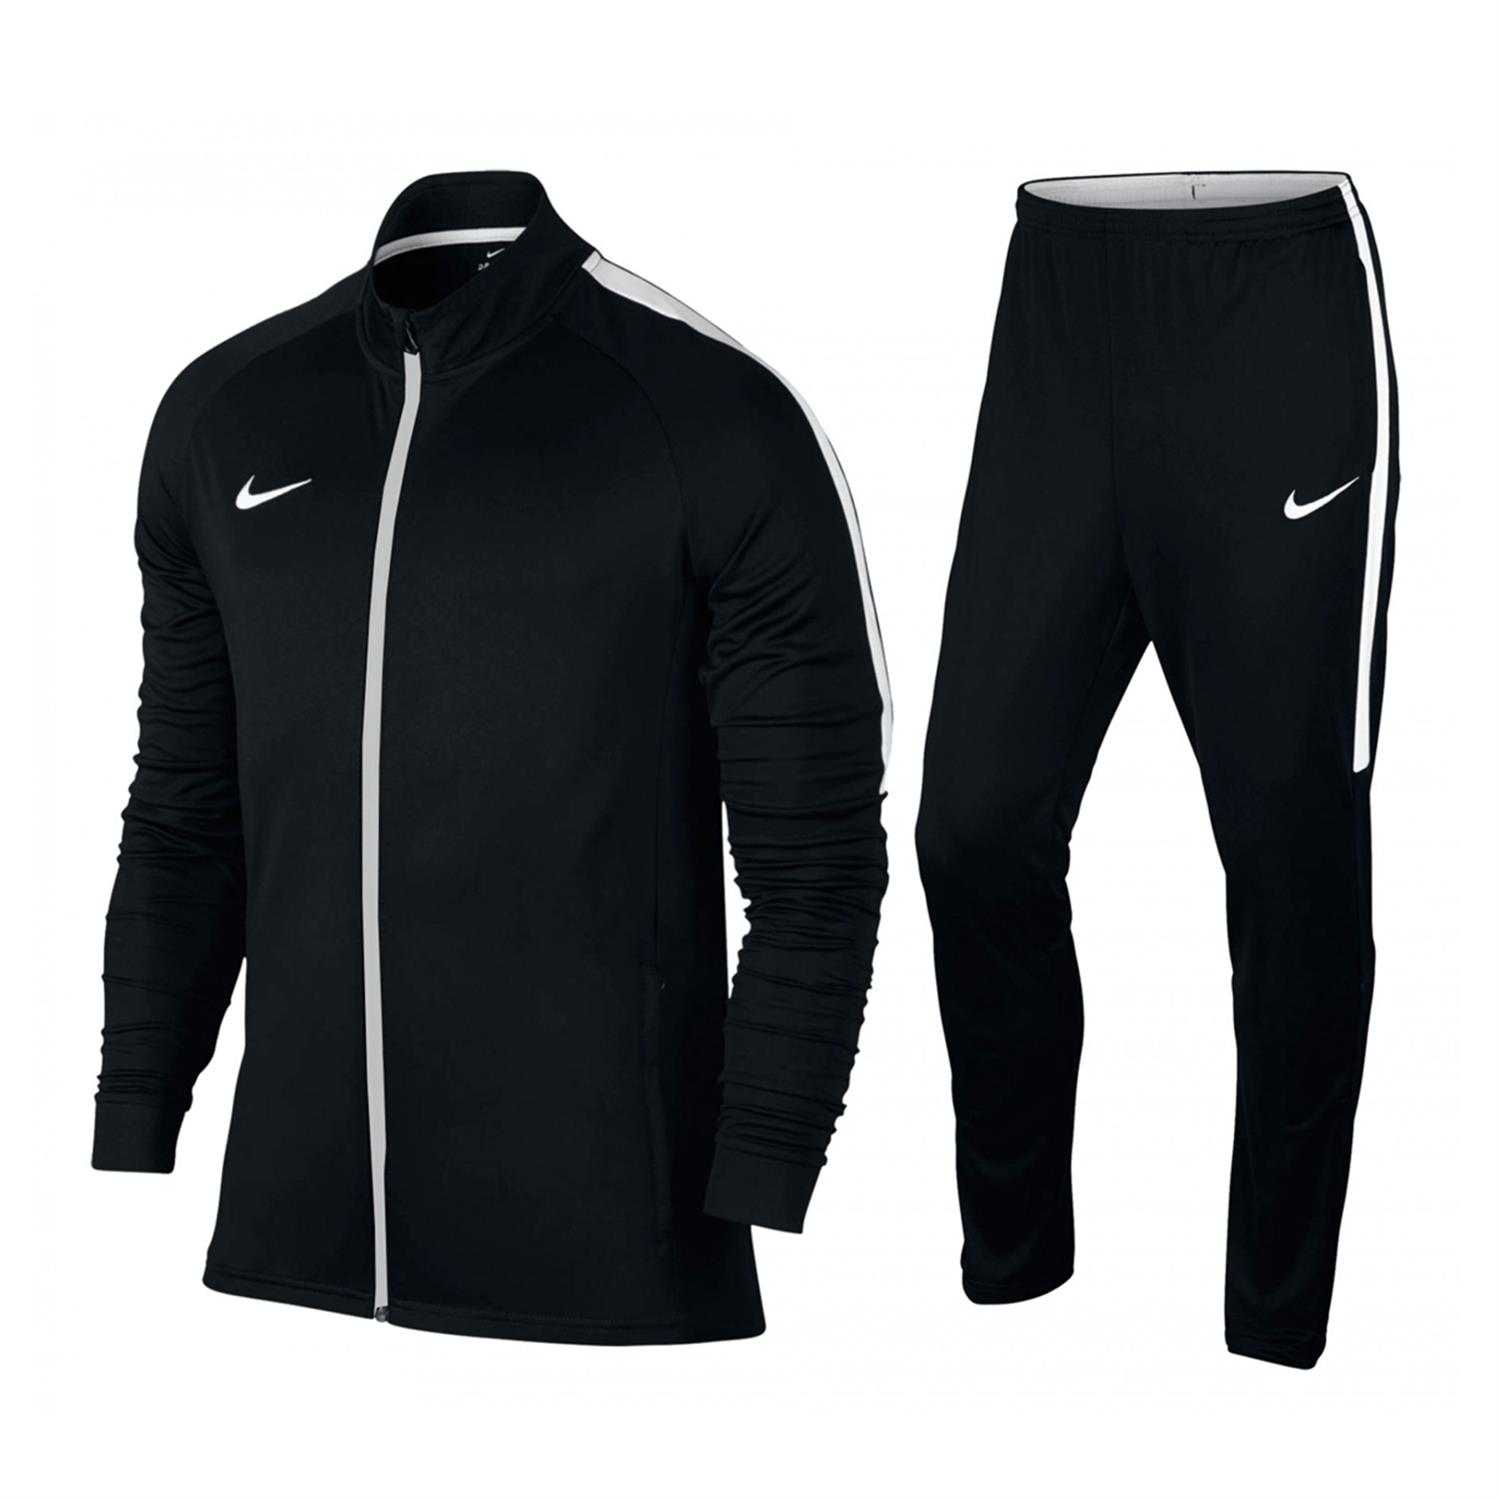 nike dry academy trainingspak junior zwart wit online kopen bij sportpaleis. Black Bedroom Furniture Sets. Home Design Ideas